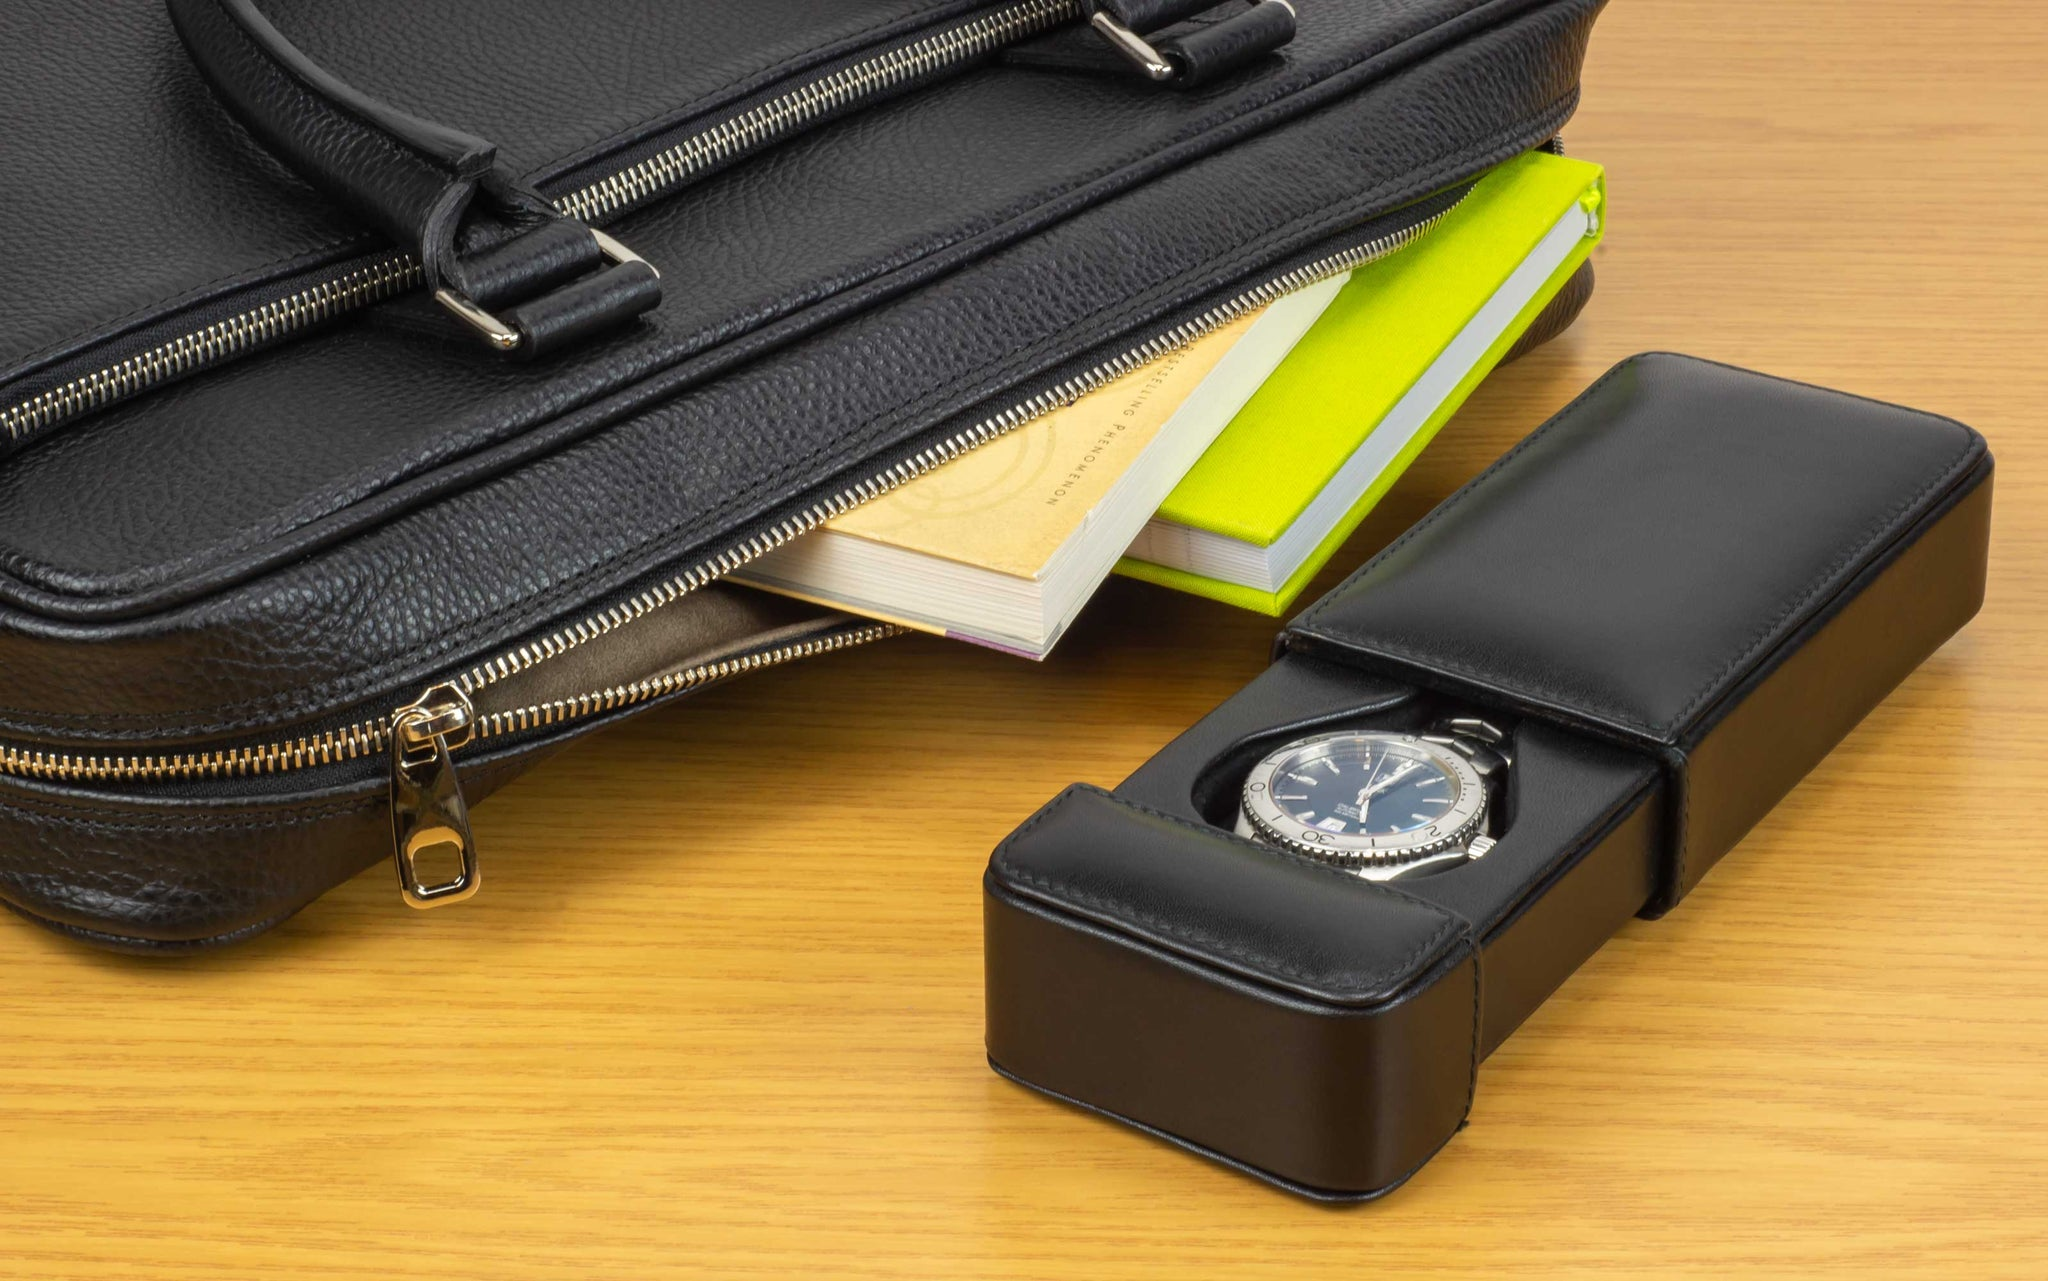 DiLoro Italian Leather Single Travel Watch Case Holder in Black Made in Italy with DiLoro Italy Portfolio (watch not included)